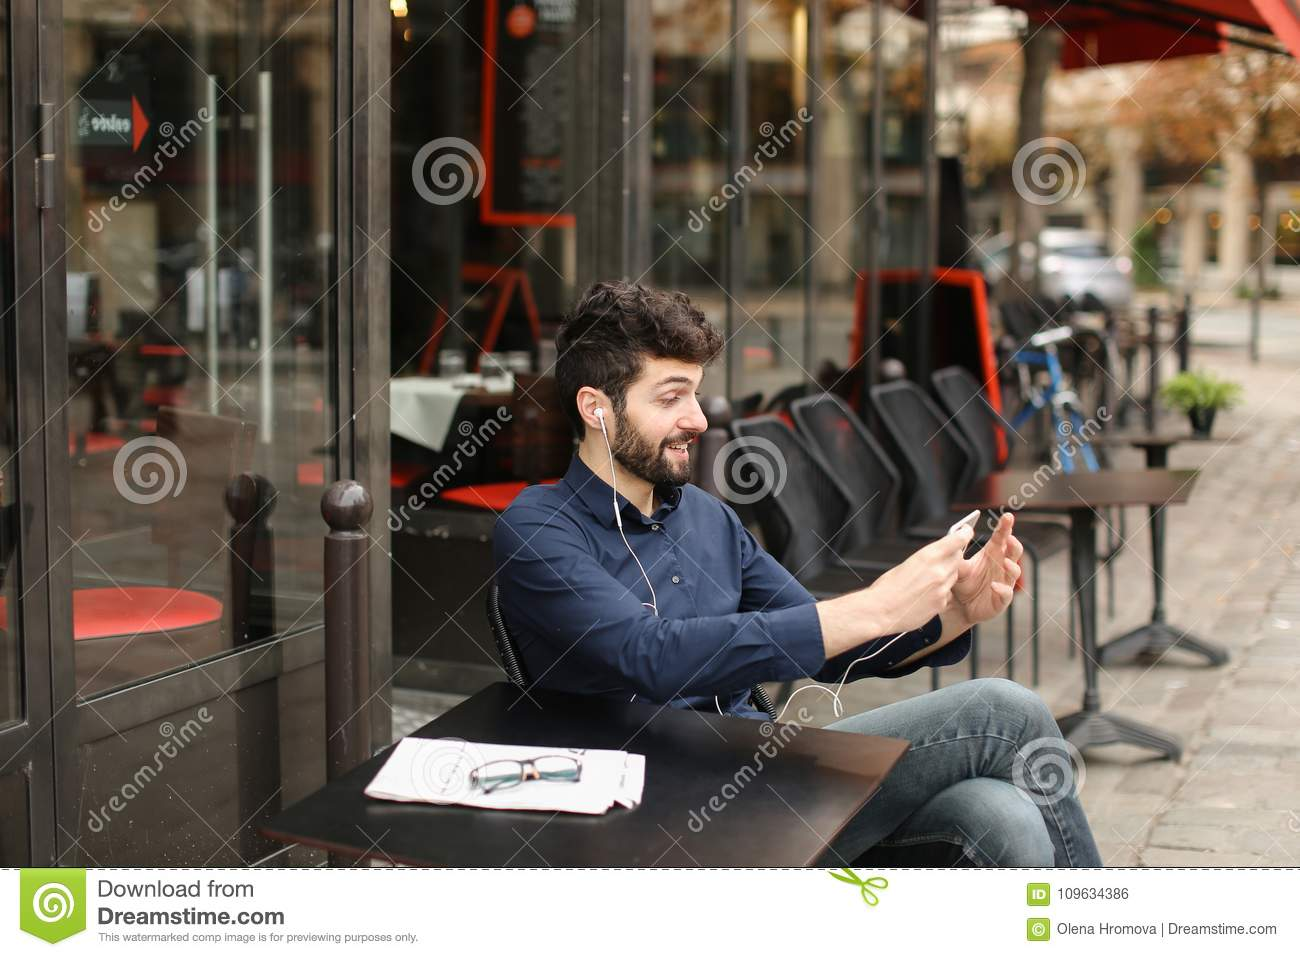 Student Listening To Music With Smartphone And Earphones At